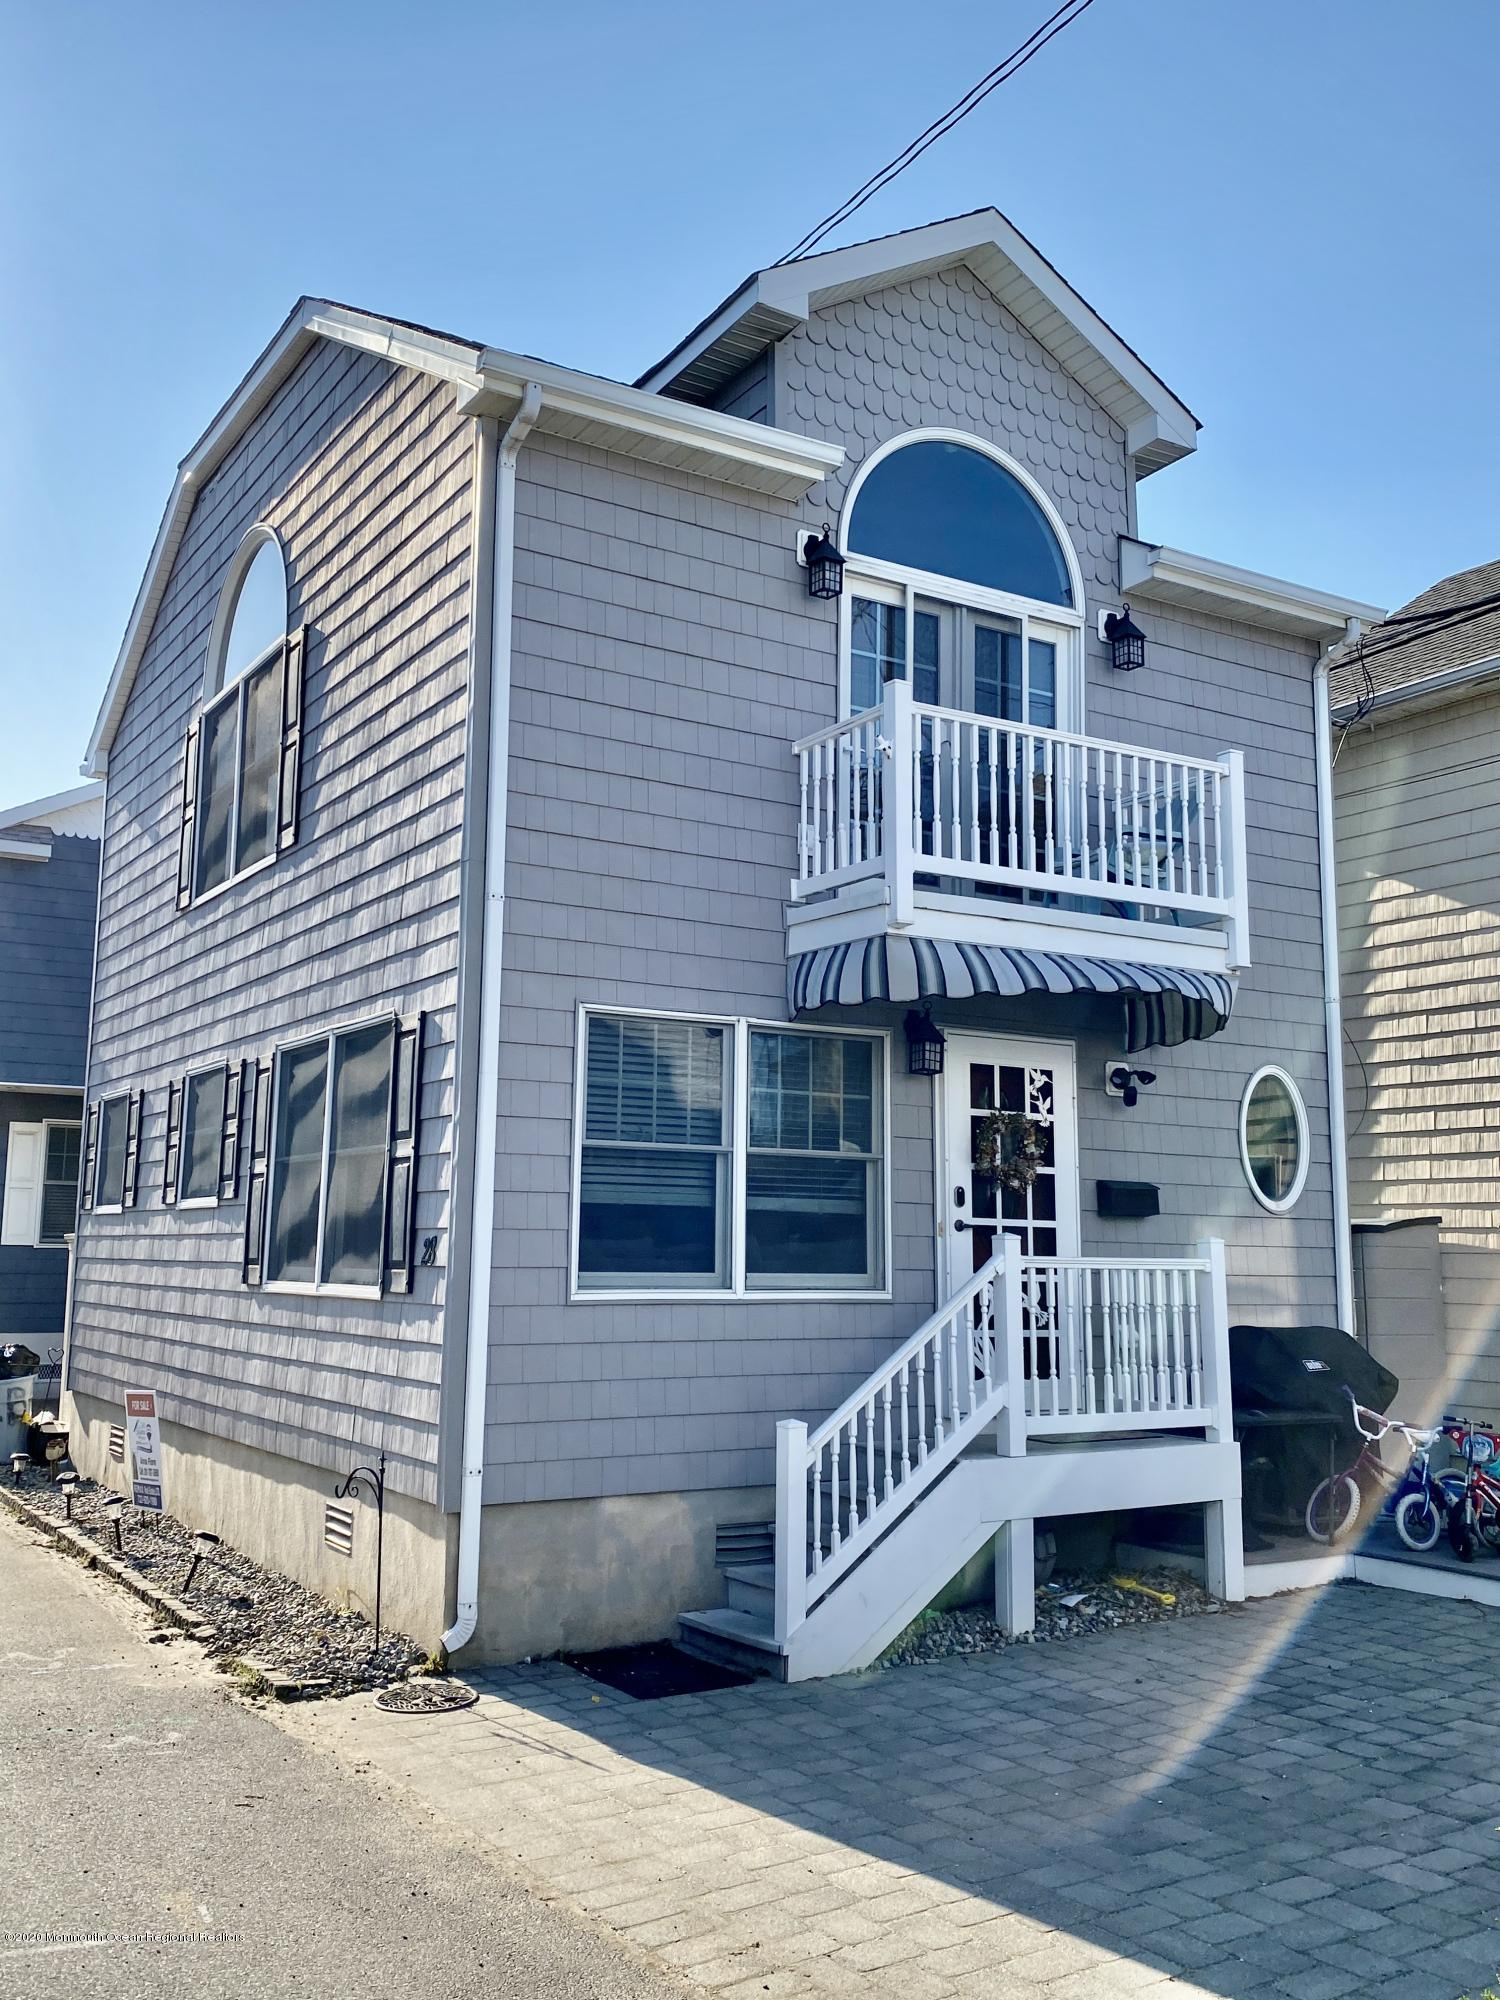 Photo of 28 E Bay Way, Lavallette, NJ 08735